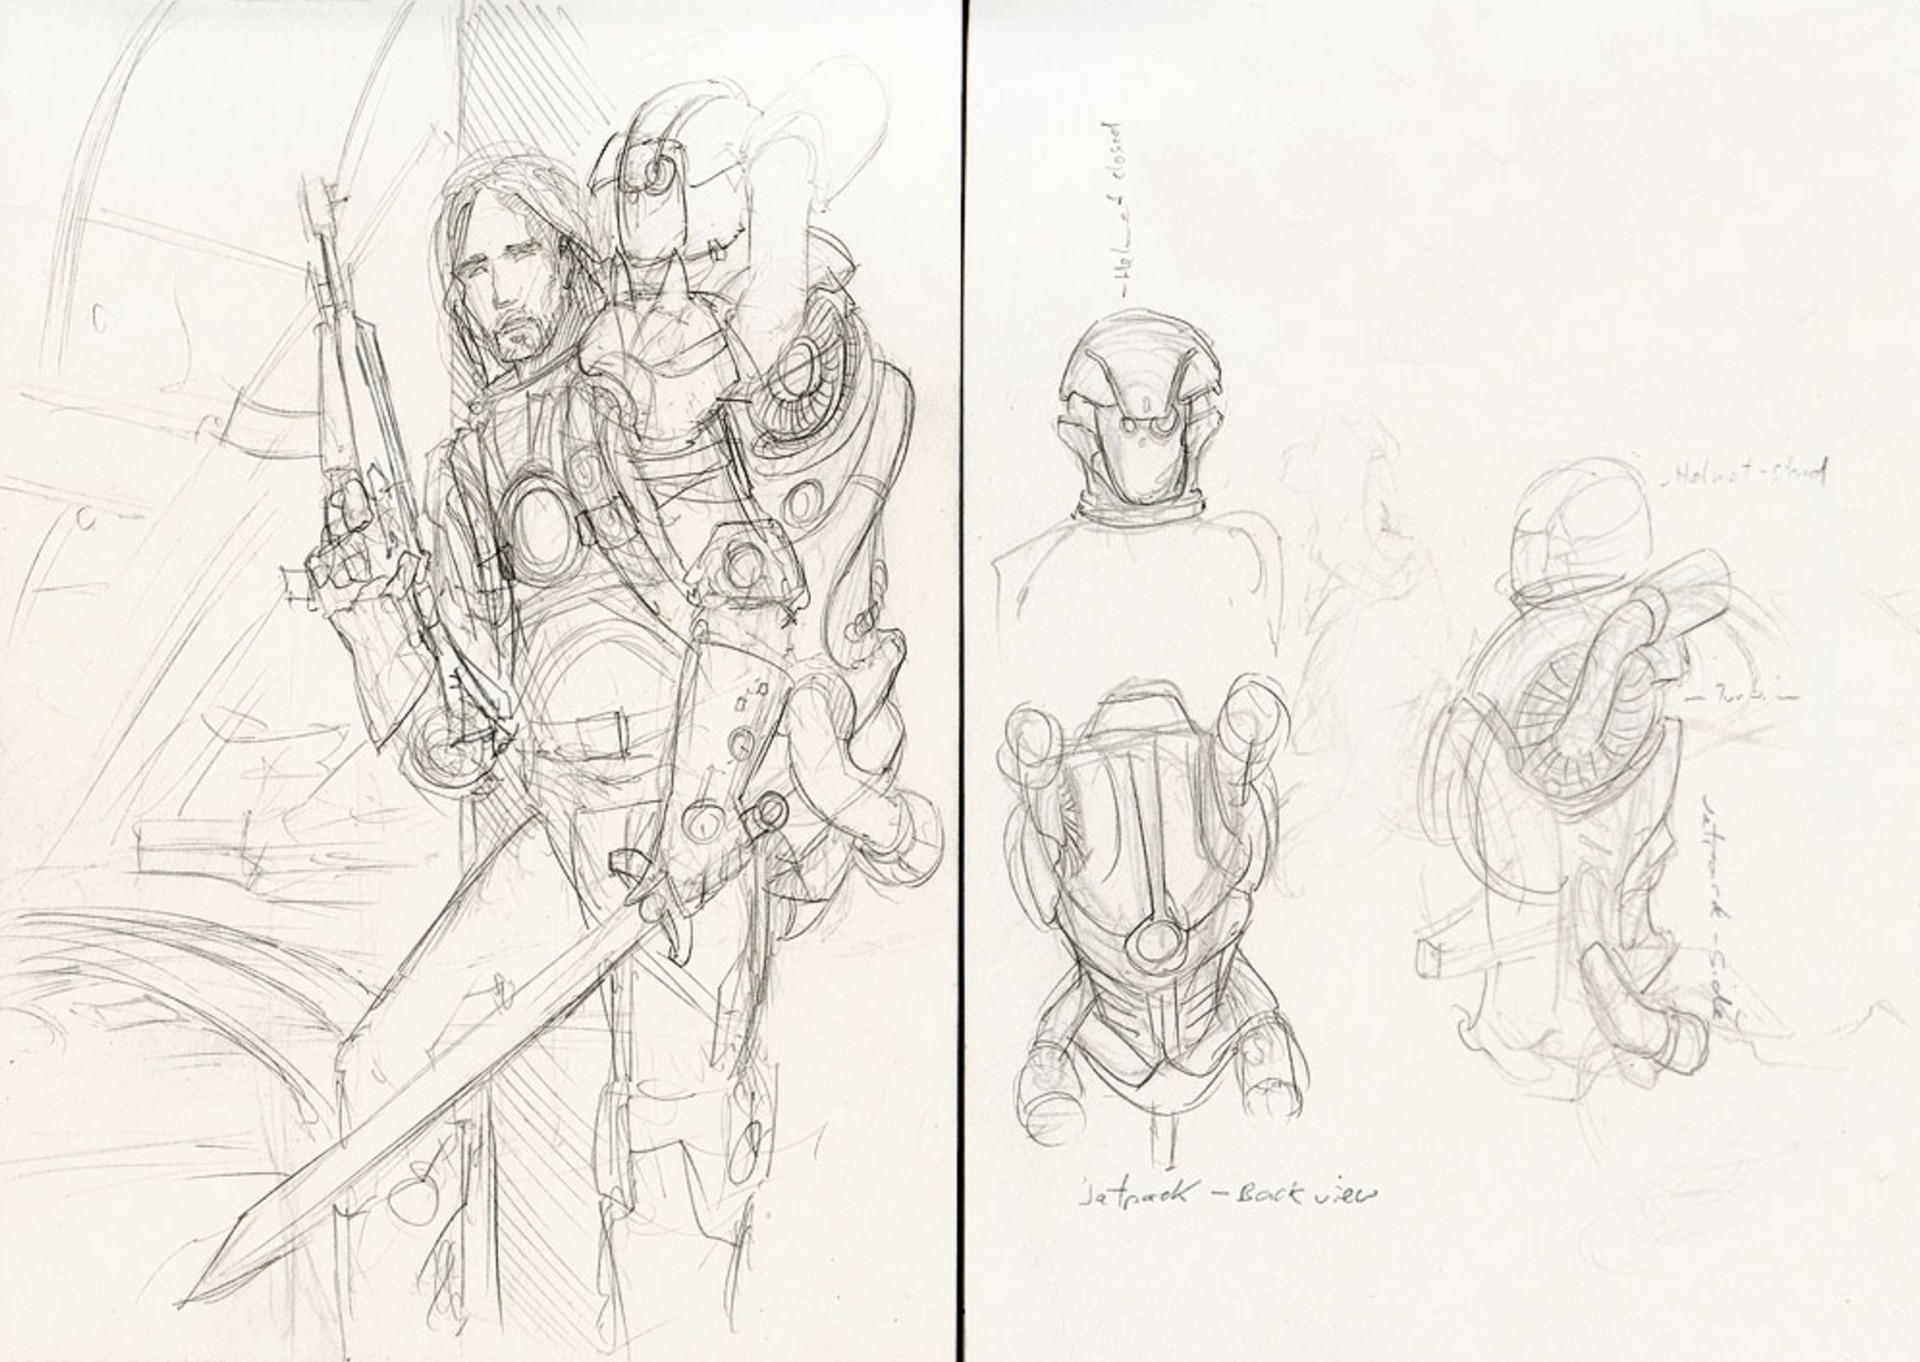 Detailed Sketch and concept for the jetpack